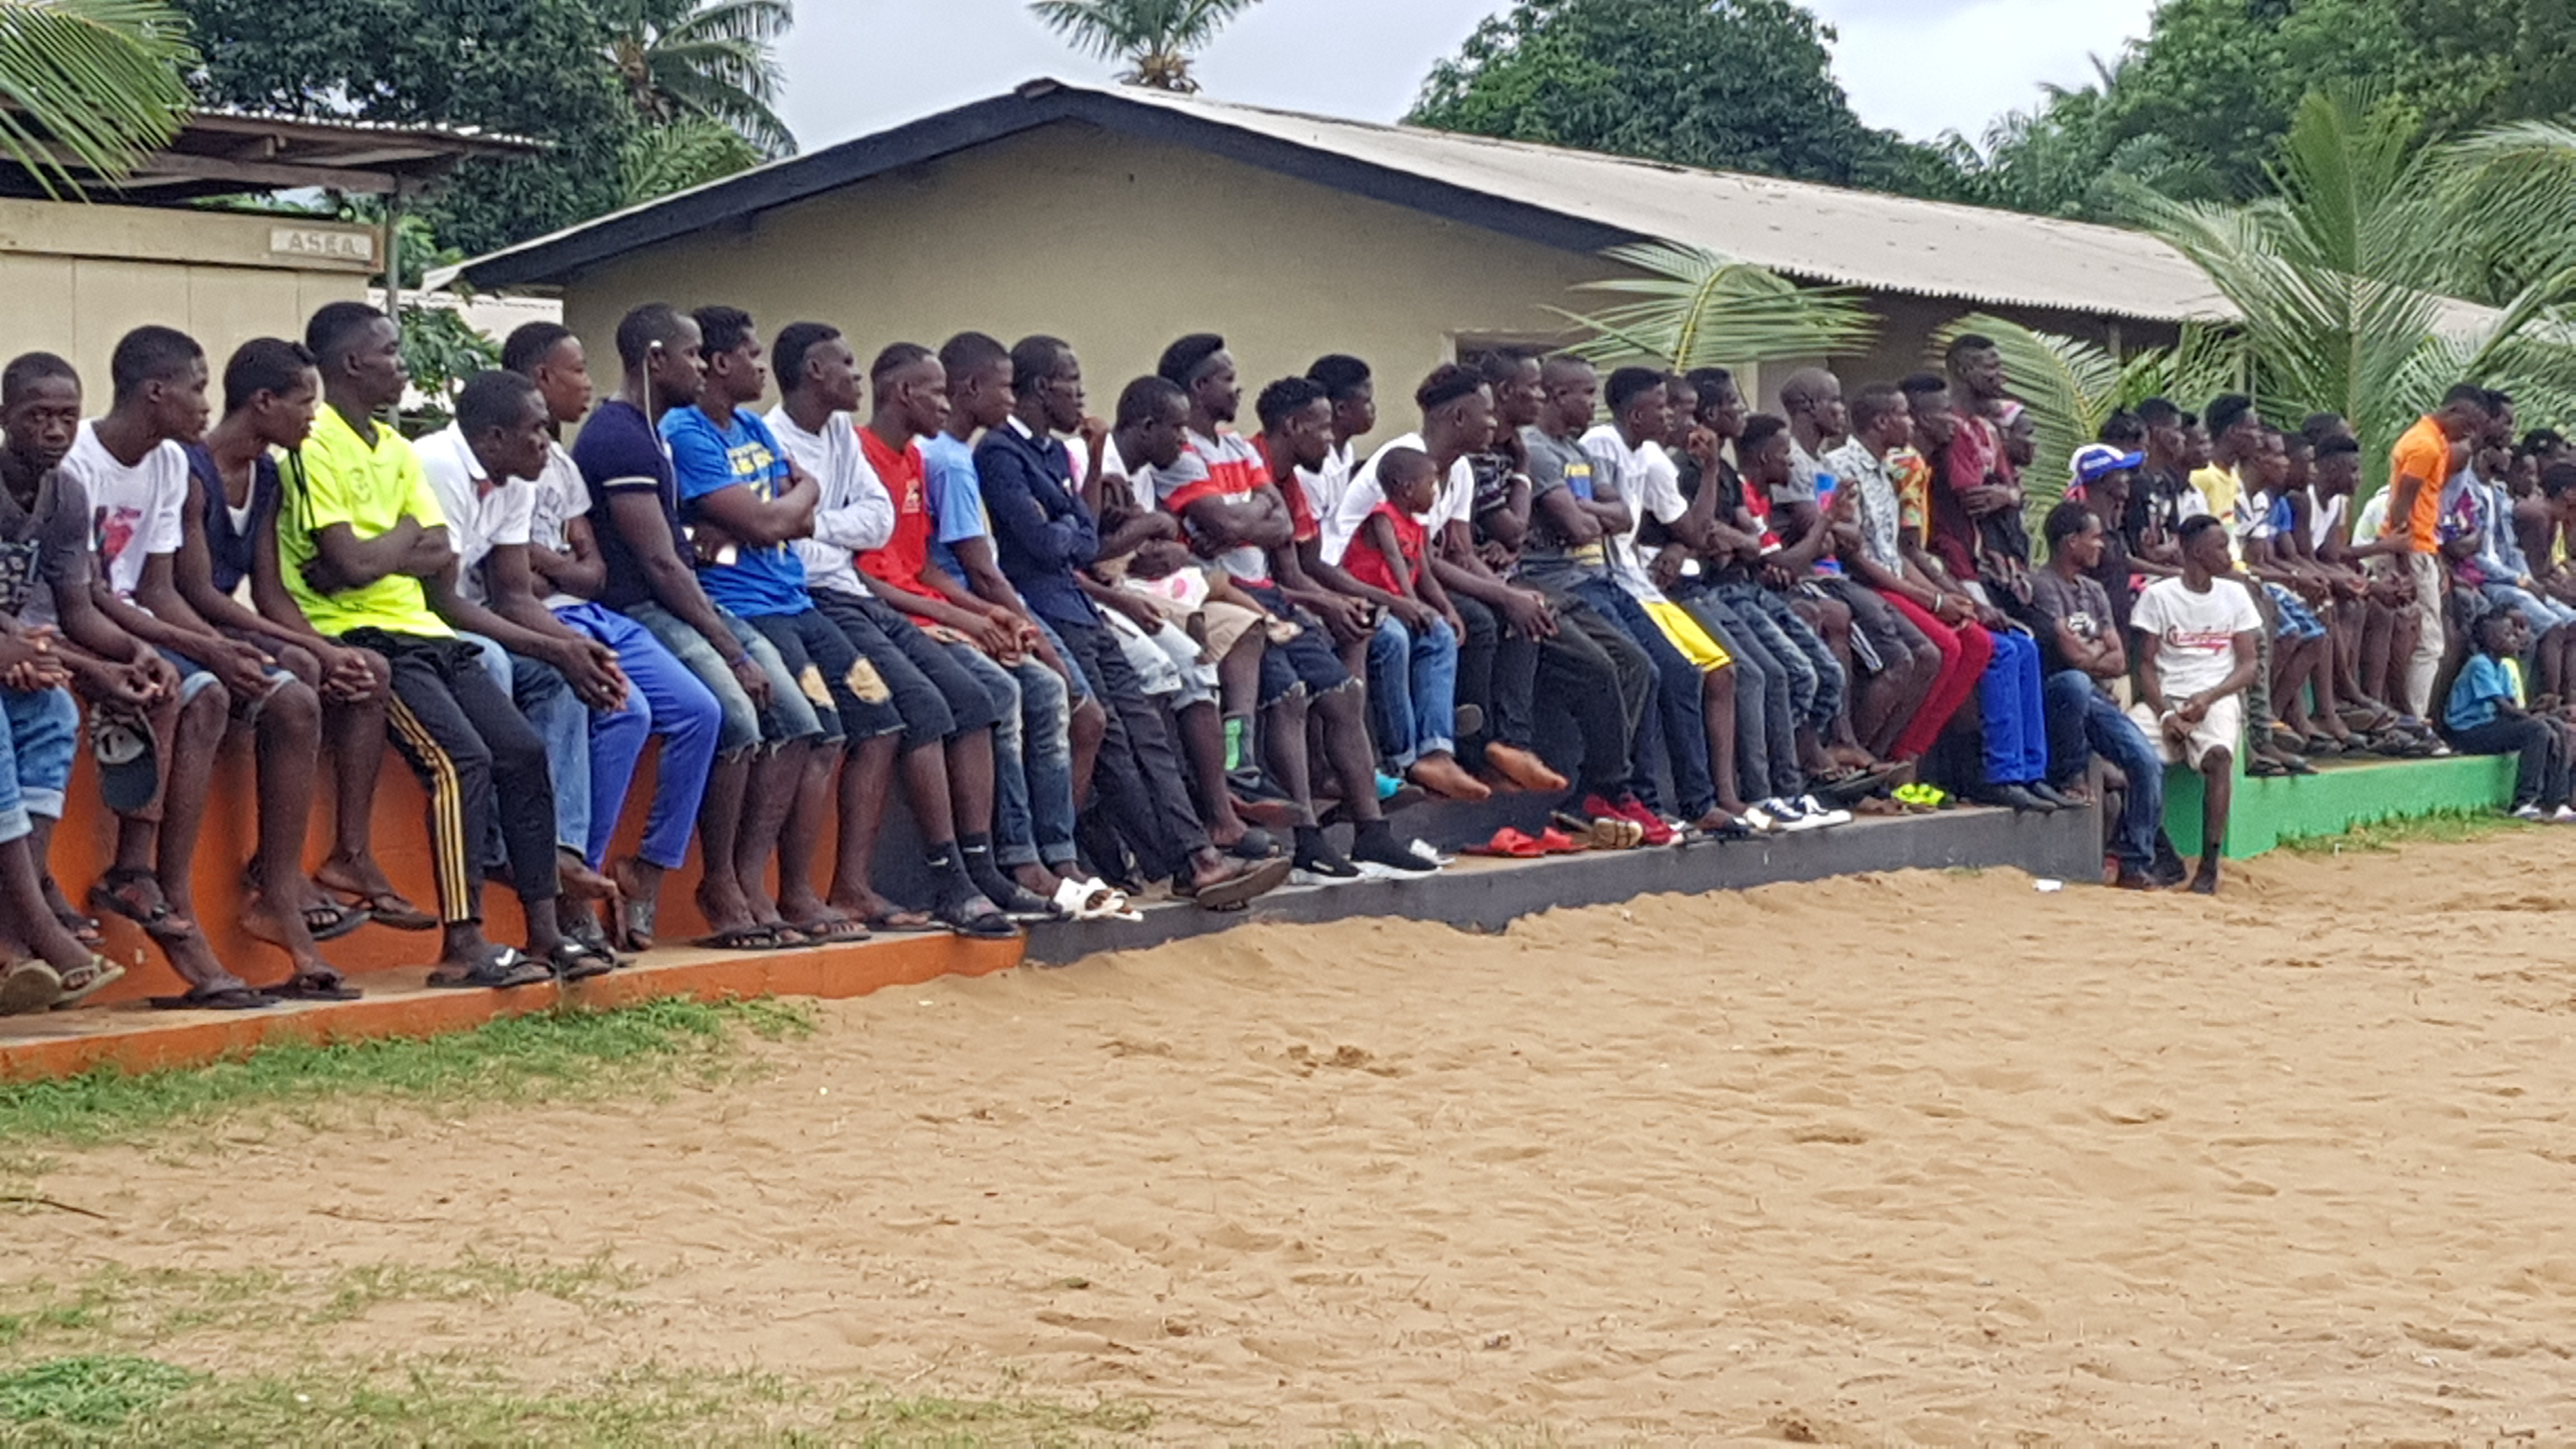 SOS Liberia supports community initiatives to promote integration and development